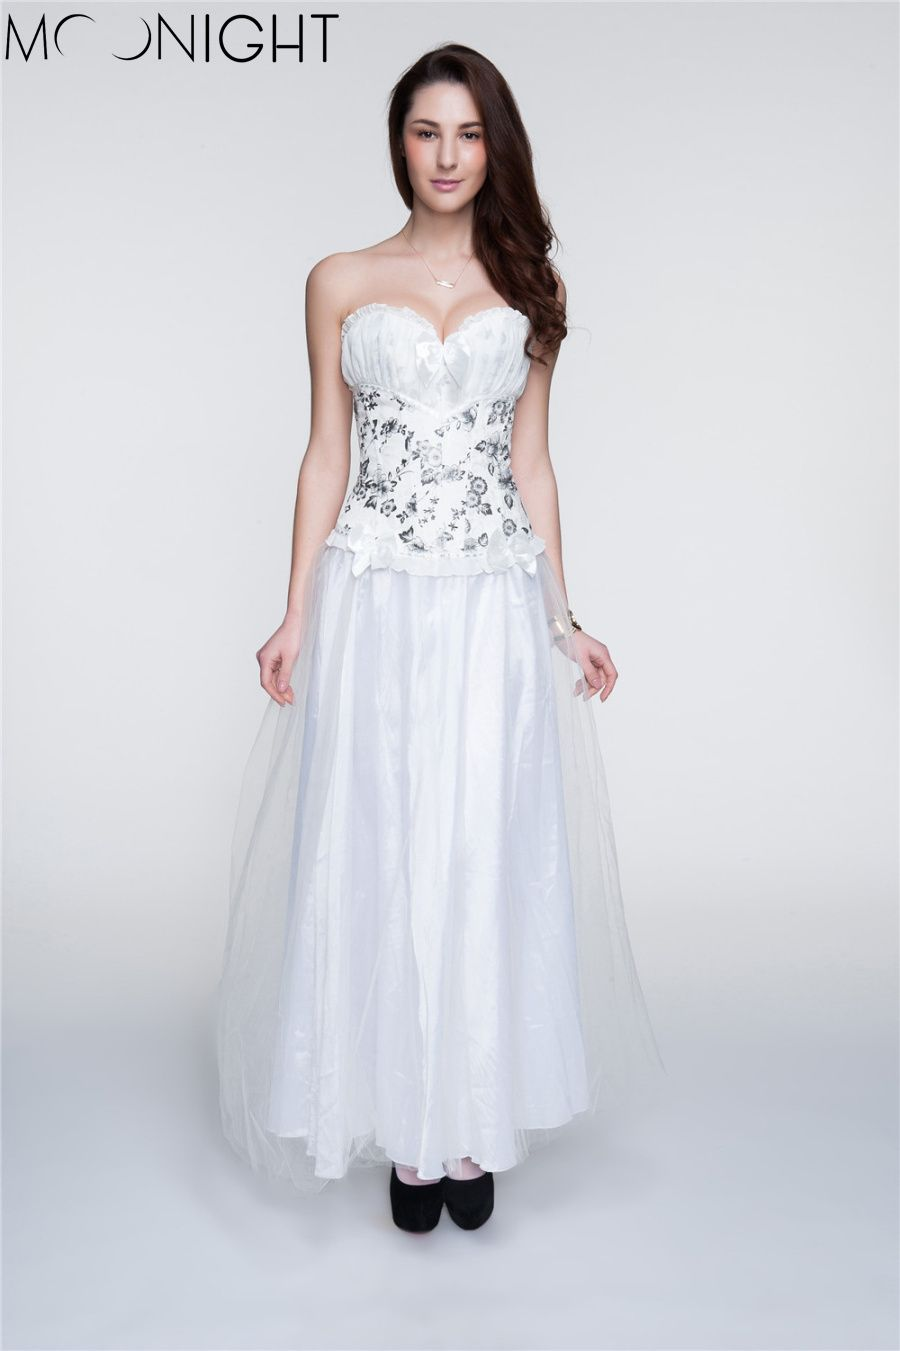 Cheap dresses with corsets buy quality dress garment directly from